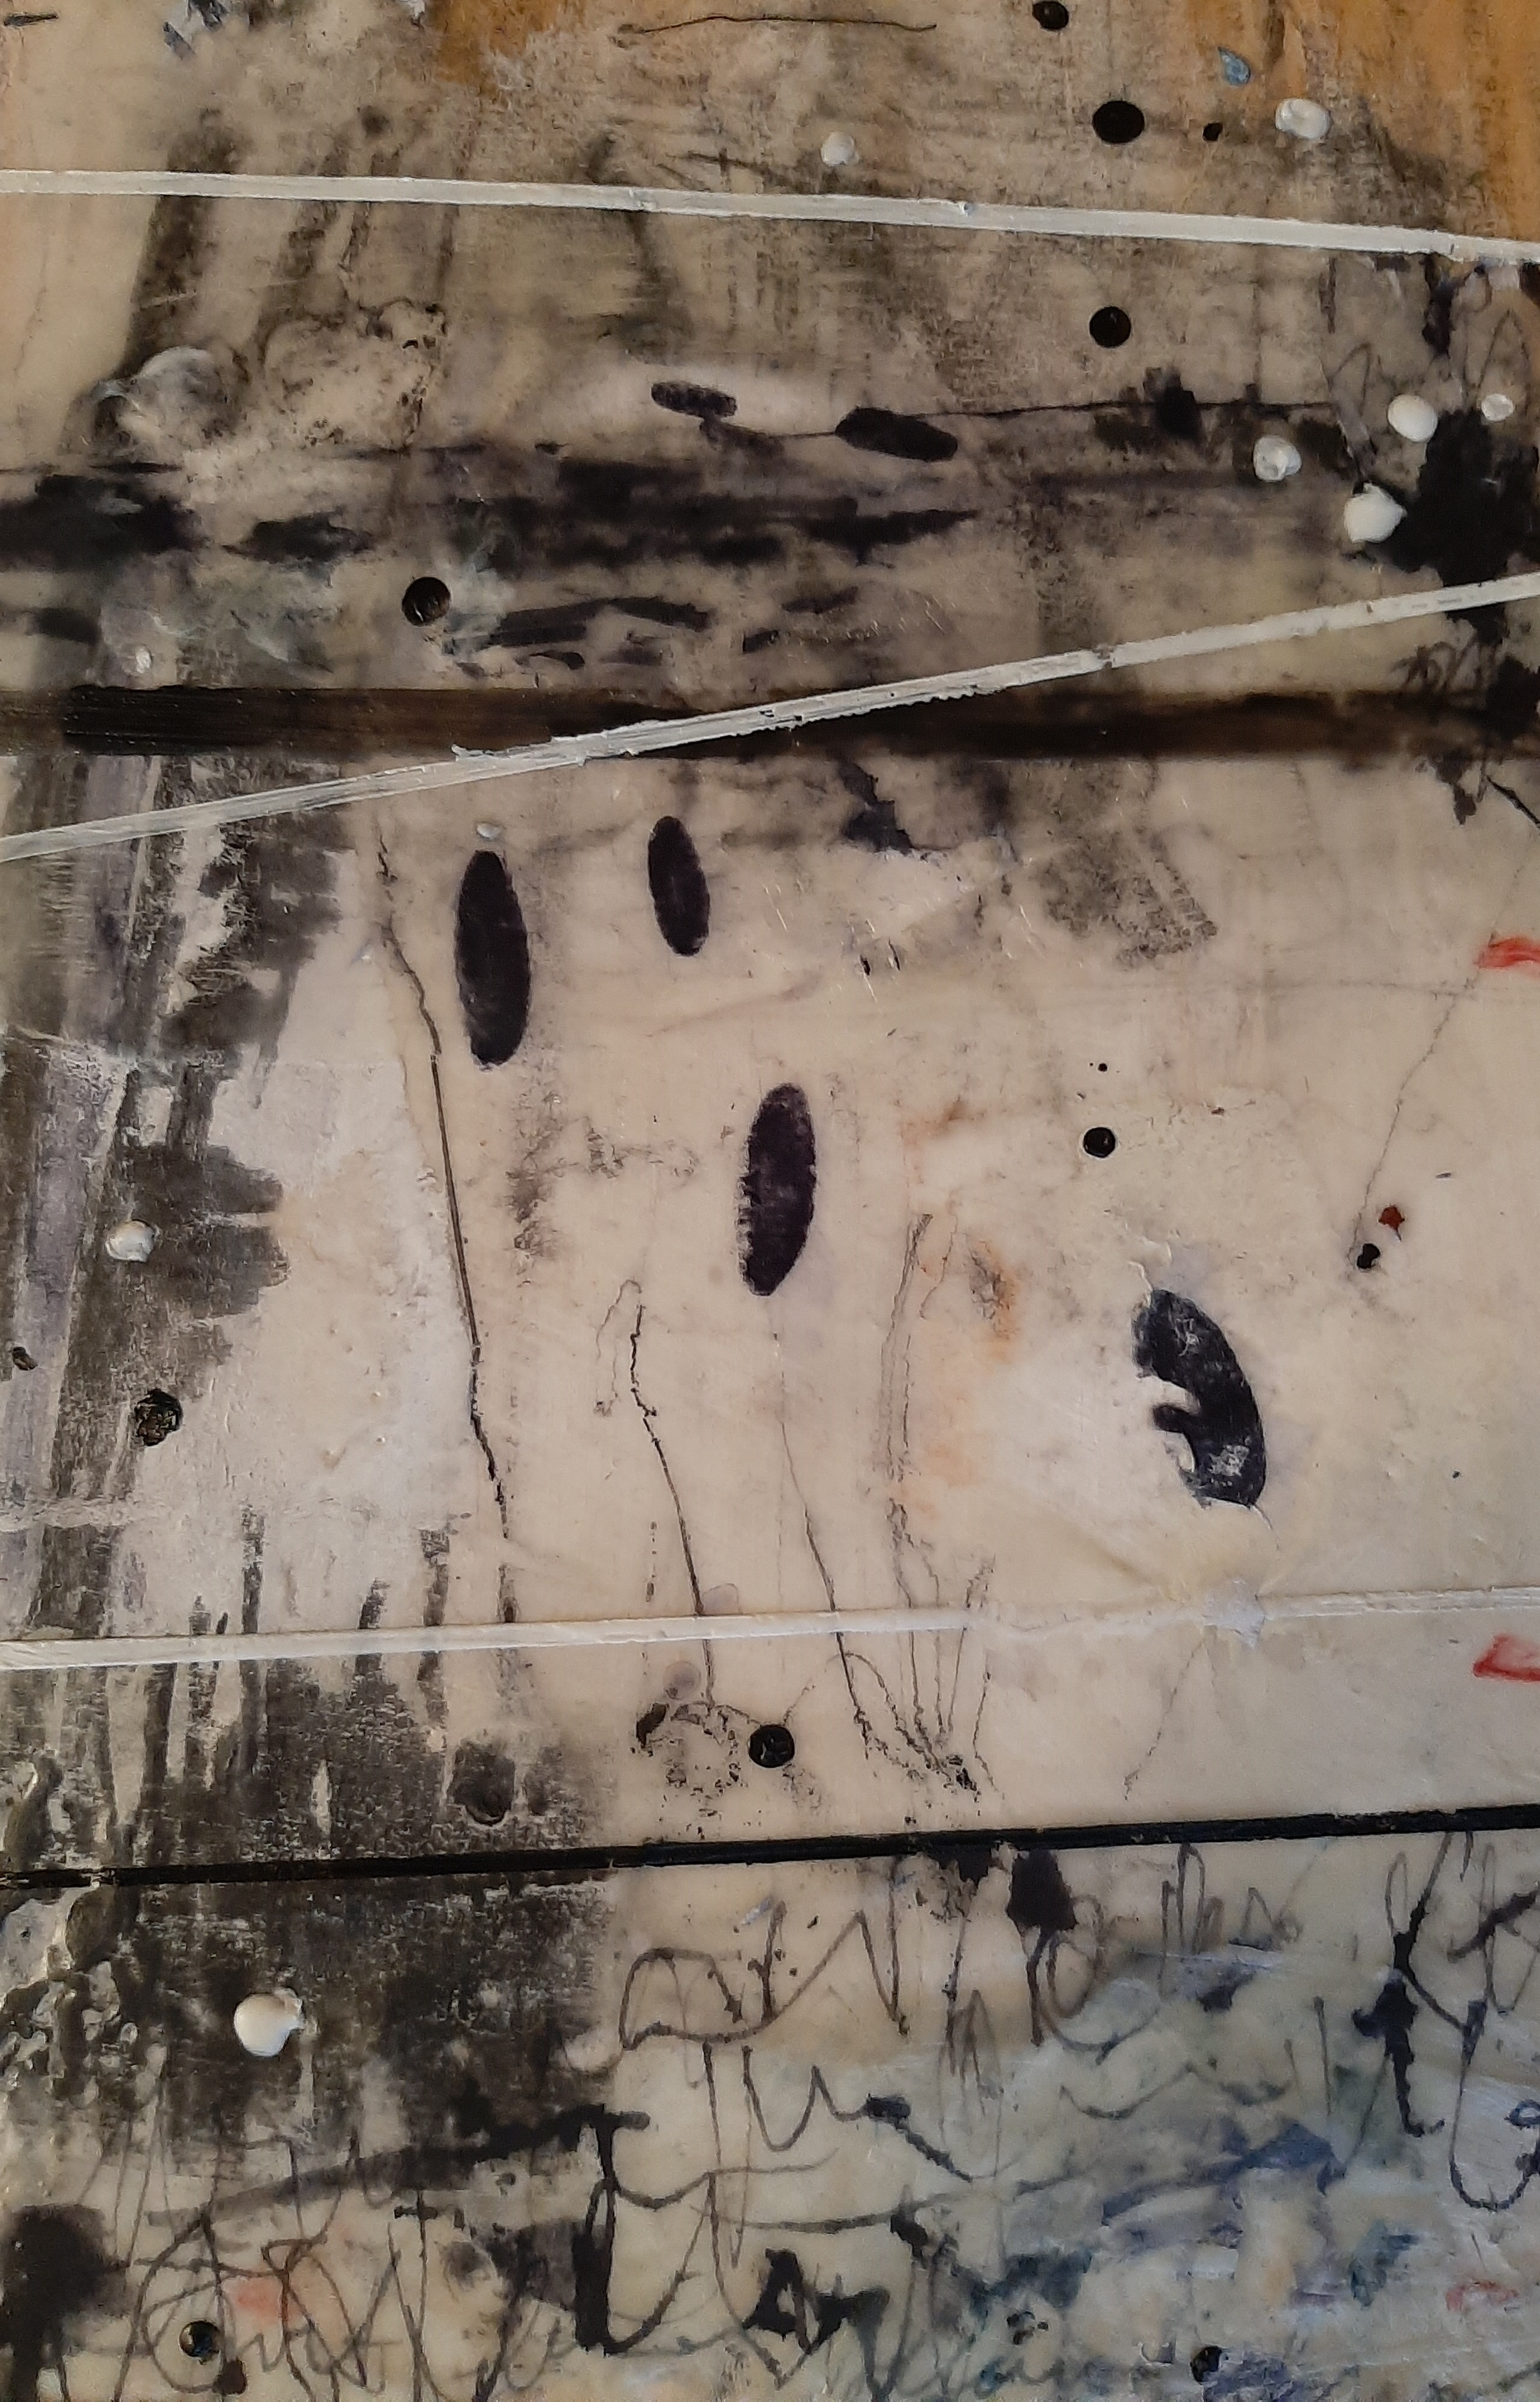 Detail of an abstract encaustic painting in shades of white, grey and black